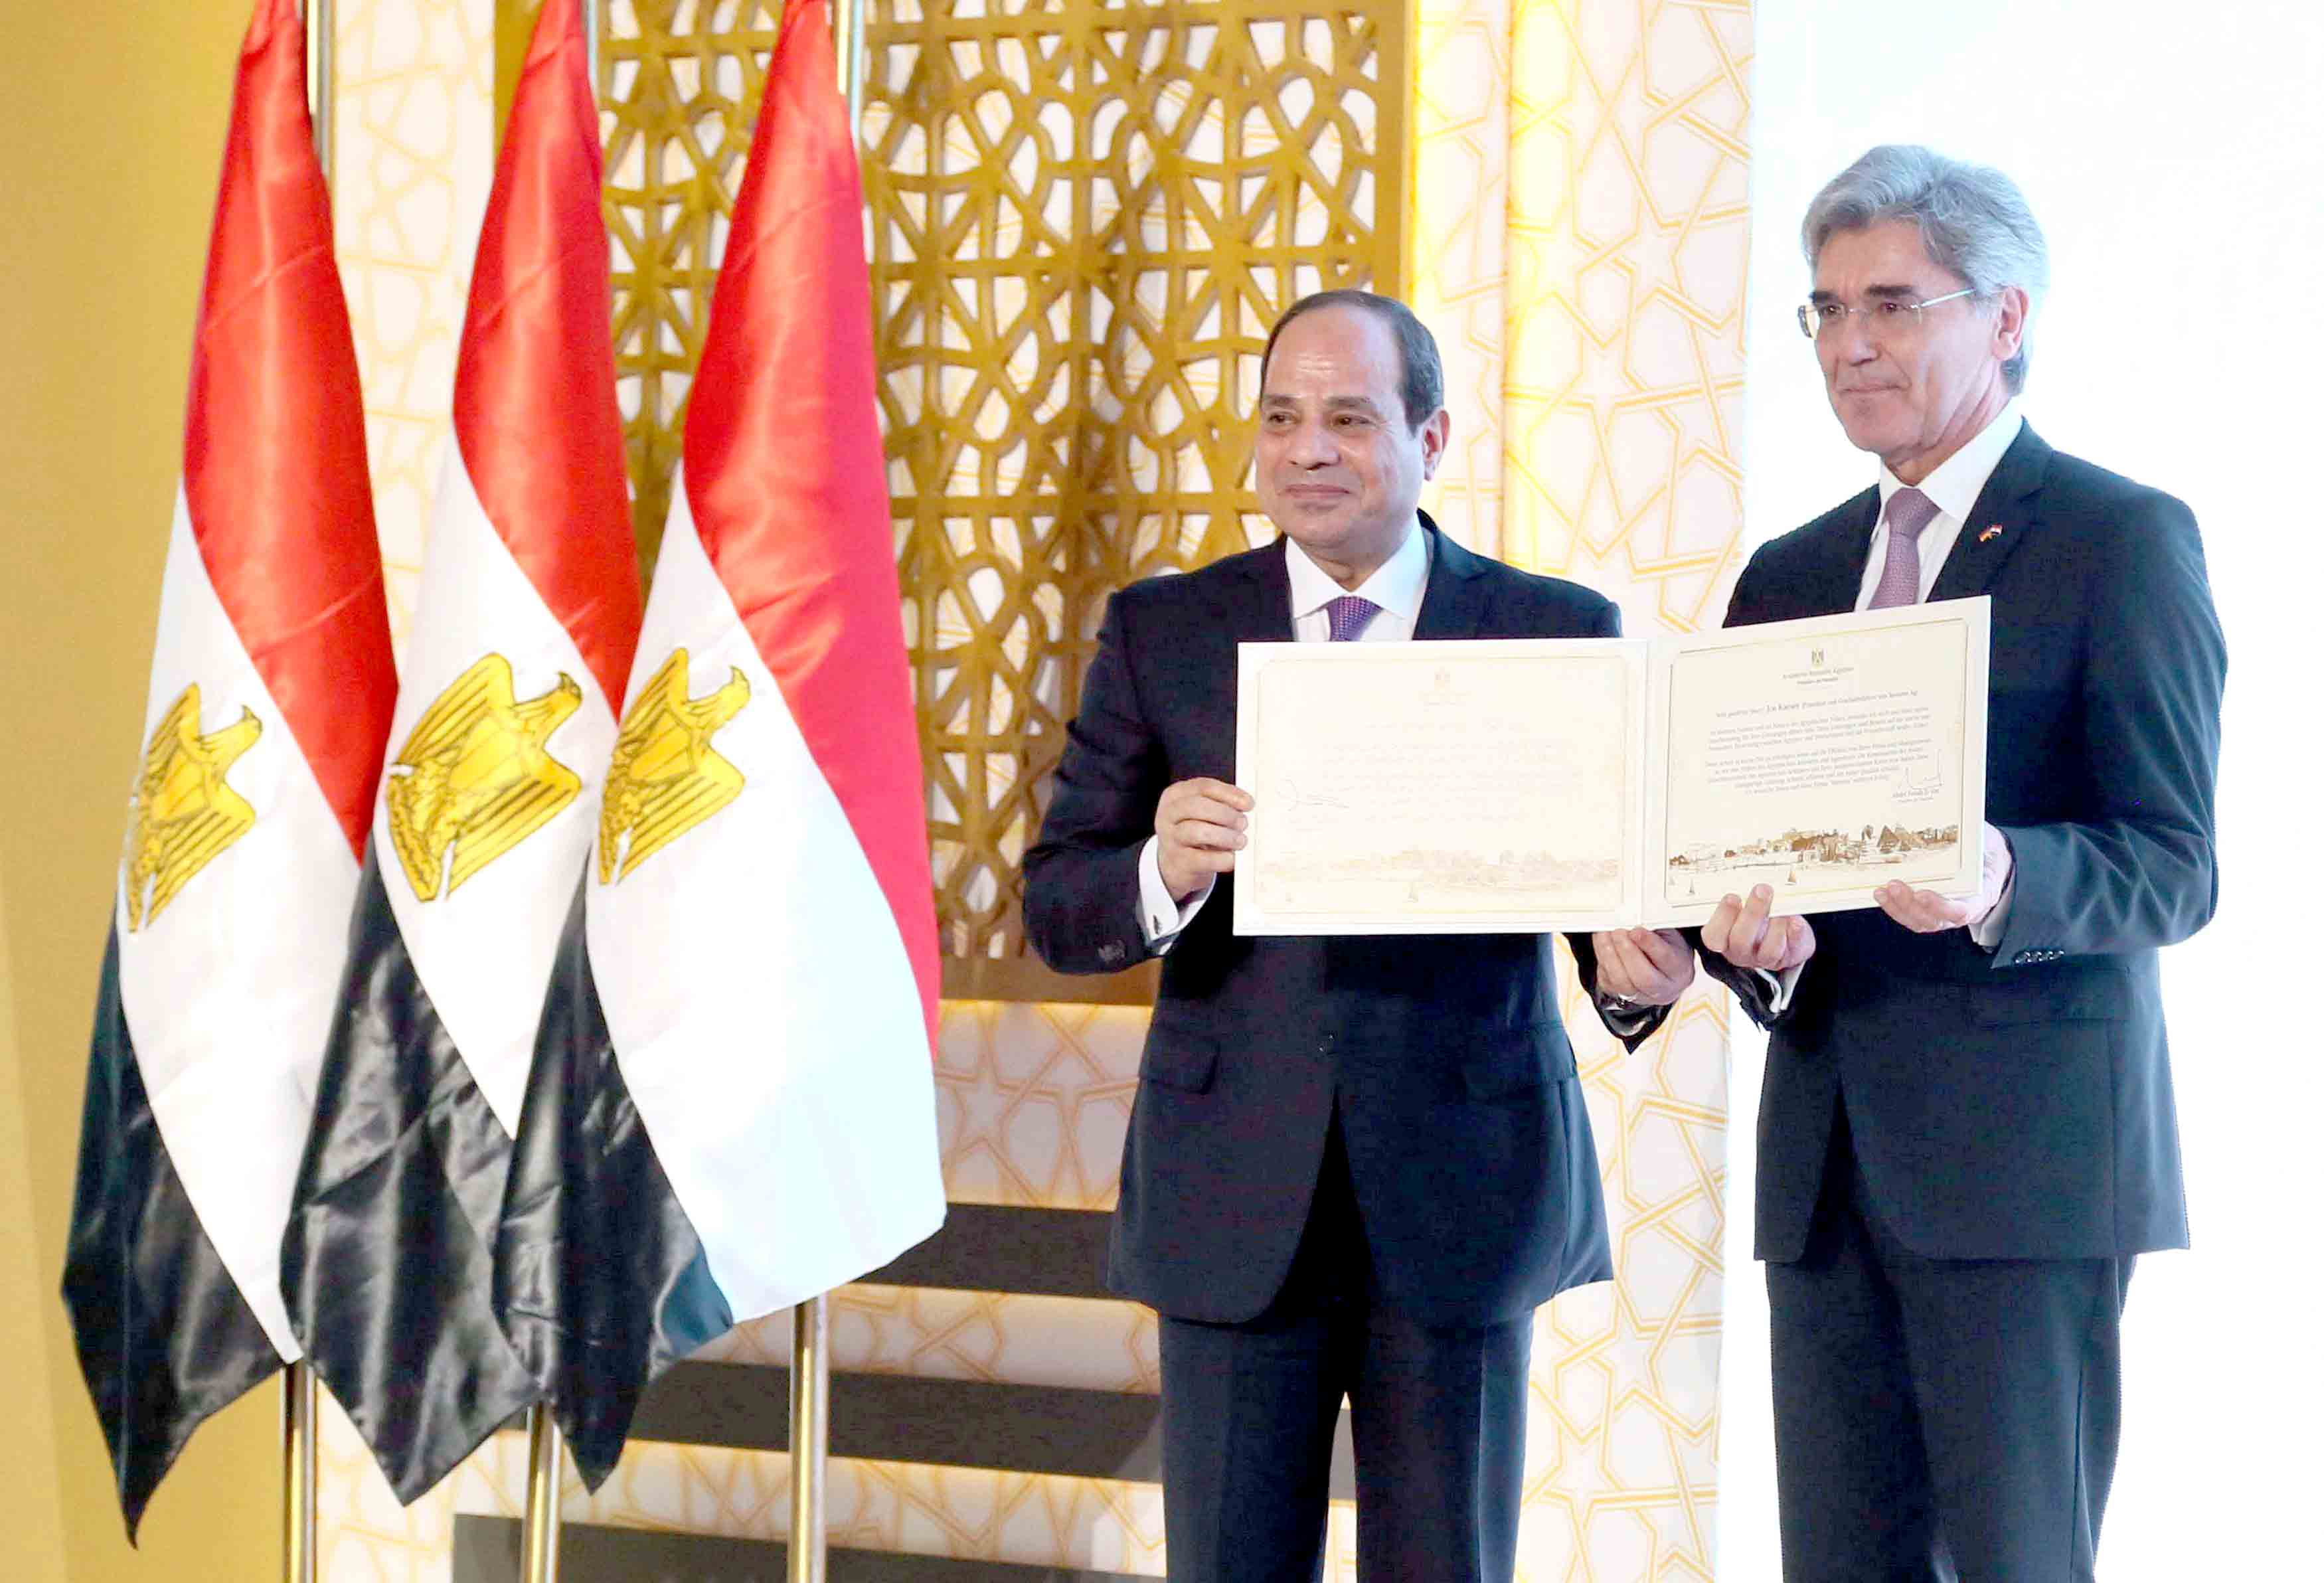 Egyptian President Abdel Fattah Al Sisi (L) and Joe Kaeser, chief executive of German engineering group Siemens attend the inauguration of major power stations in the energy sector, at Egypt's new administrative capital, north of Cairo, Egypt, July 24, 2018 in this handout picture courtesy of the Egyptian Presidency. The Egyptian Presidency/Handout via. (Reuters)